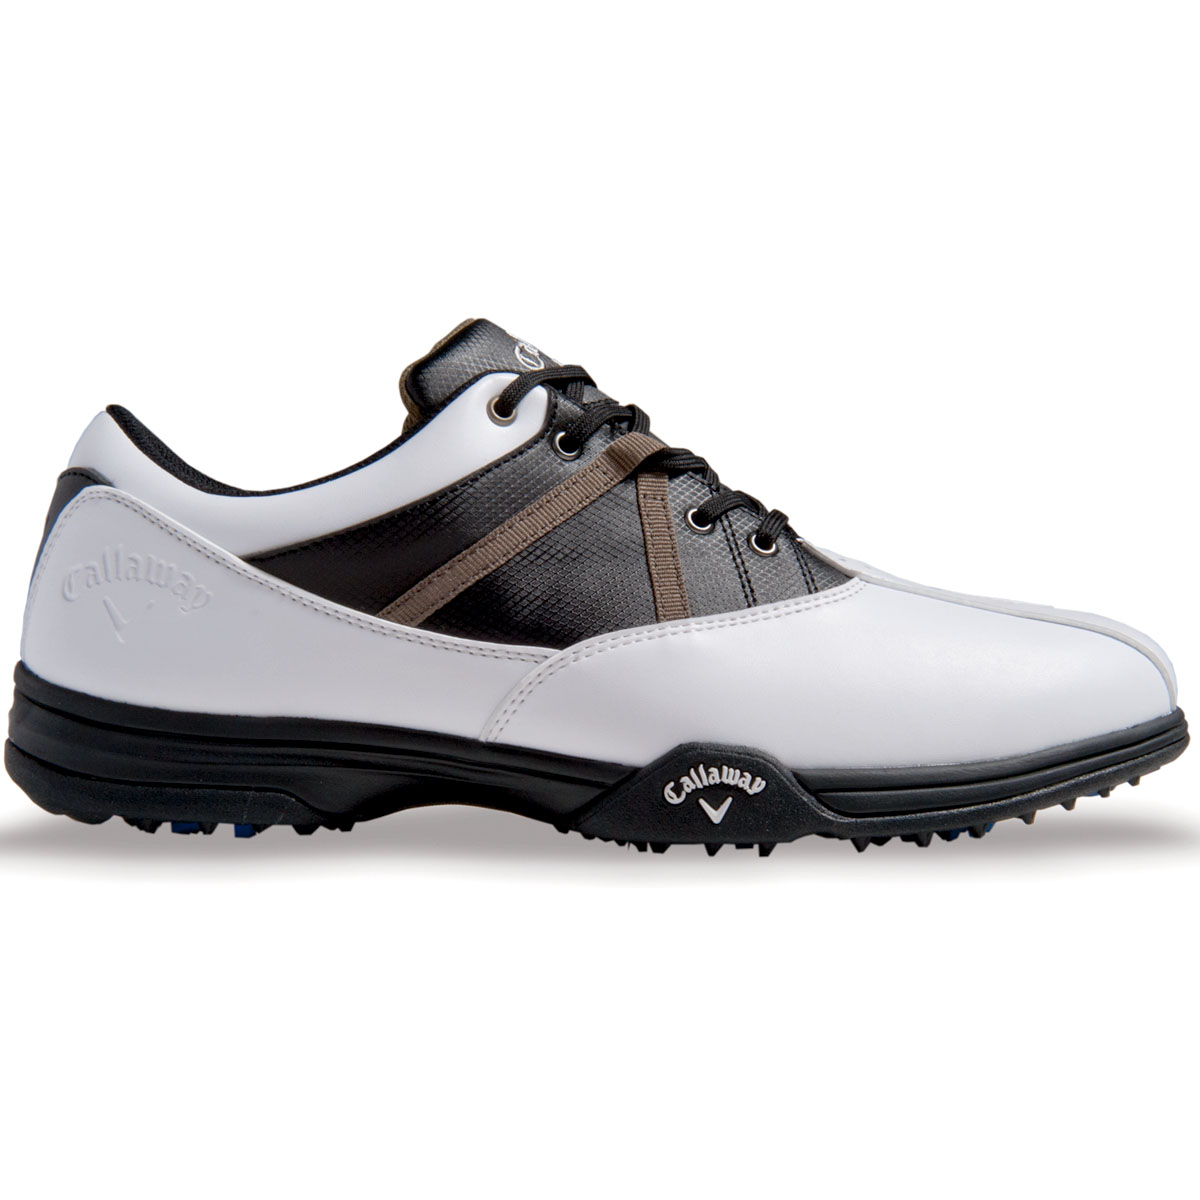 Callaway Spikeless Golf Shoes